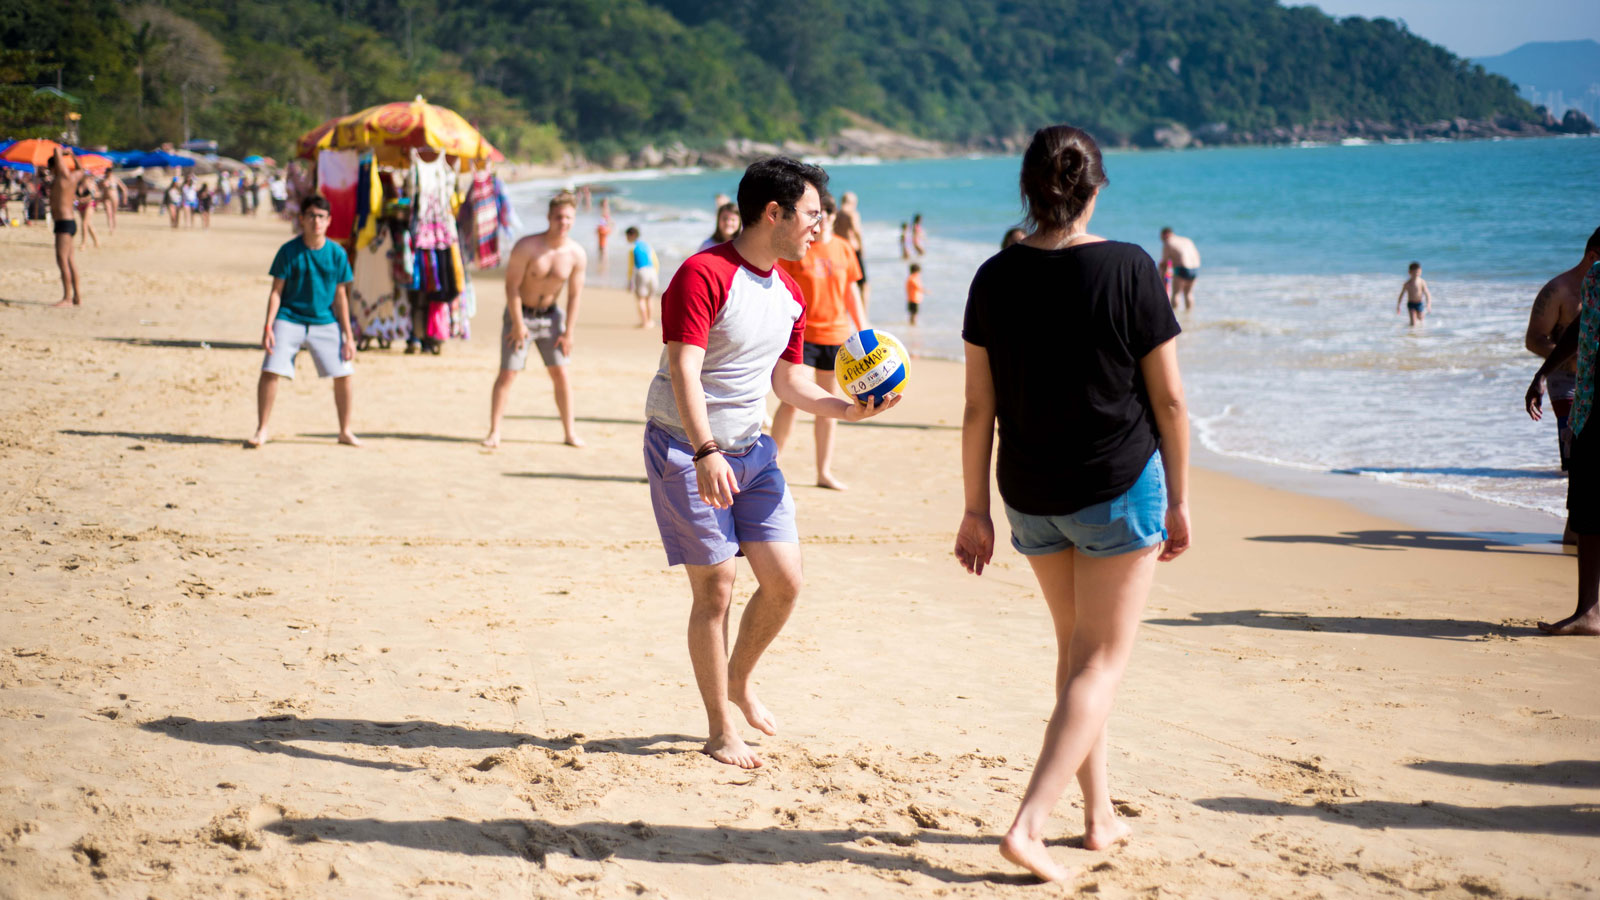 ISA students playing volleyball on a beach in Florianopolis, Brazil